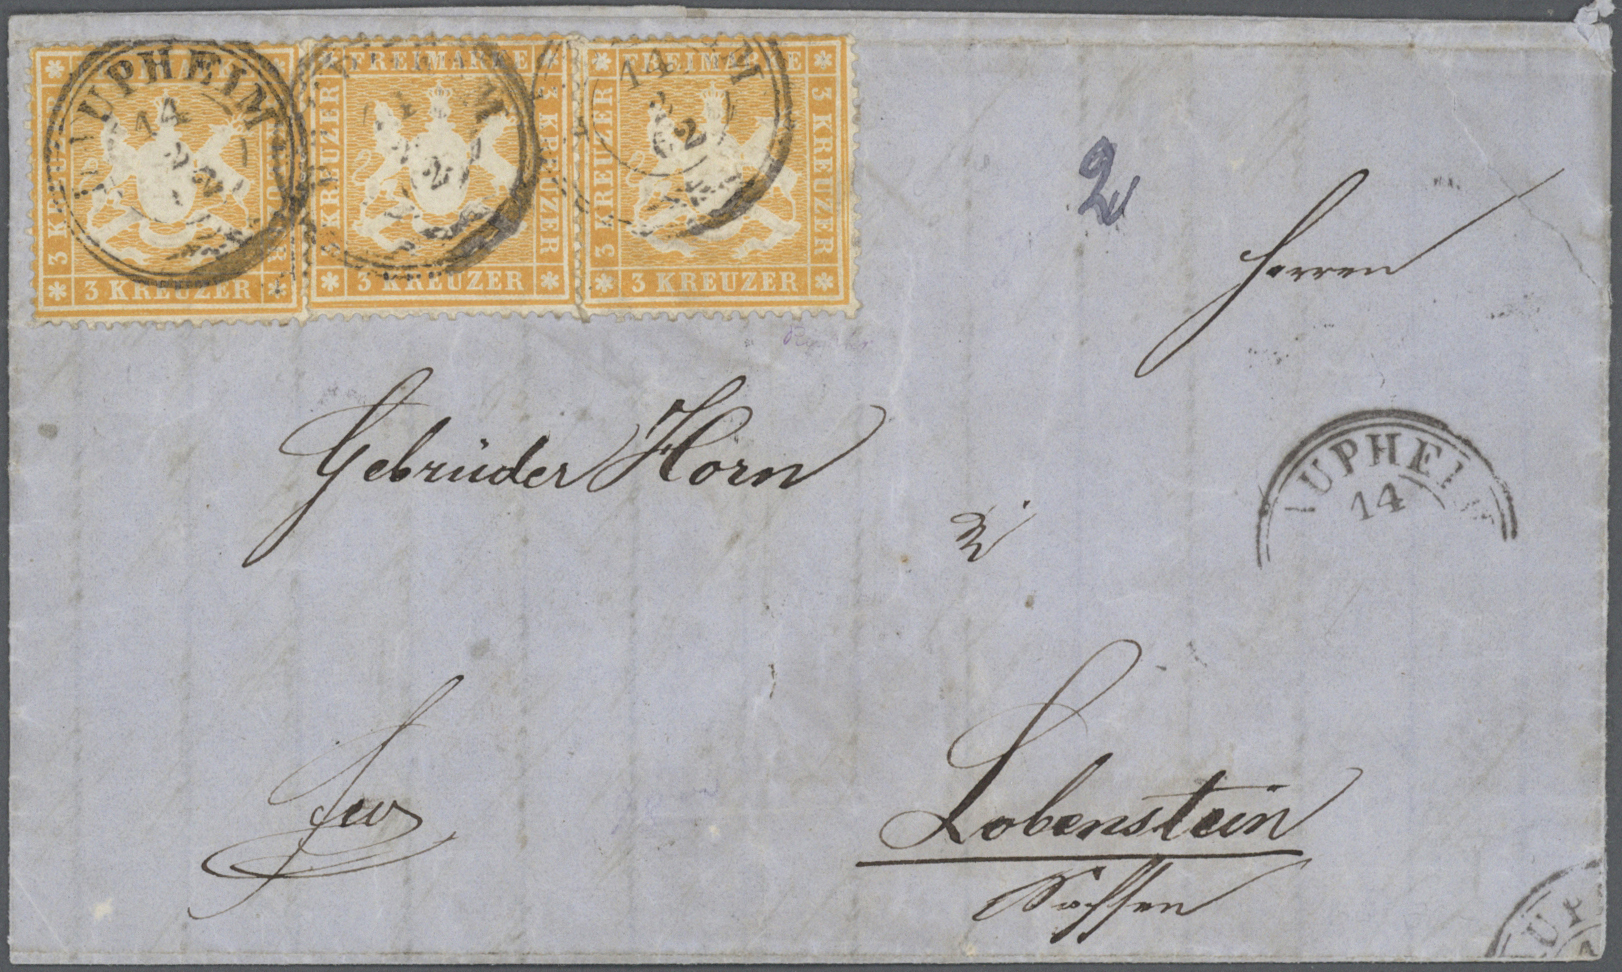 Lot 36516 - Württemberg - Marken und Briefe  -  Auktionshaus Christoph Gärtner GmbH & Co. KG Collections Germany,  Collections Supplement, Surprise boxes #39 Day 7